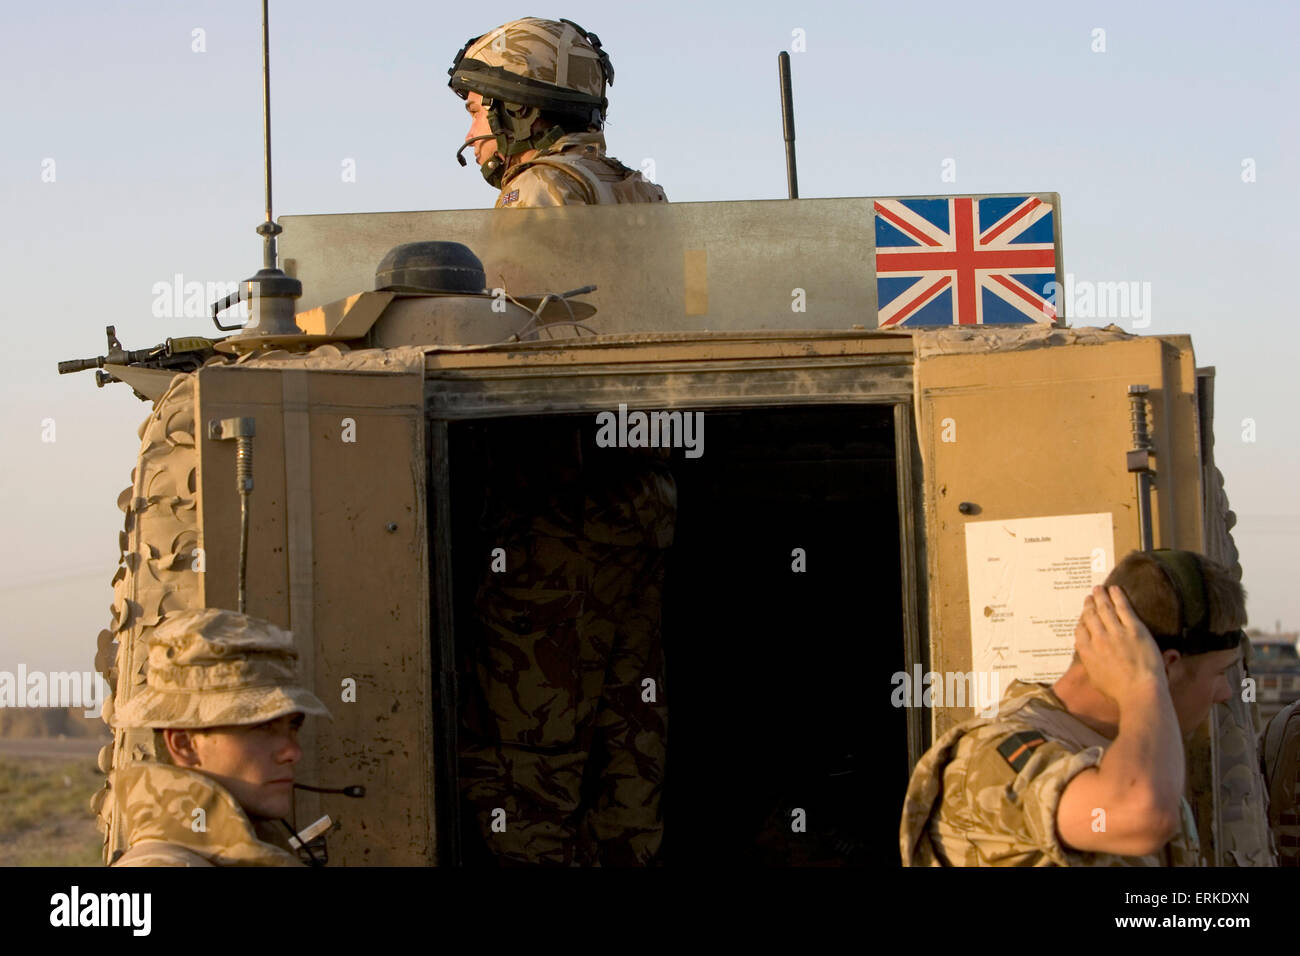 Members of the 1st Battalion Devonshire and Dorset Light Infantry on patrol near Basra, Southern Iraq. Credit: Gary Calton / eyevine  For further information please contact eyevine tel: +44 (0) 20 8709 8709 e-mail: info@eyevine.com www.eyevine.com Credit: Gary Calton / eyevine  For further information please contact eyevine tel: +44 (0) 20 8709 8709 e-mail: info@eyevine.com www.eyevine.com Stock Photo